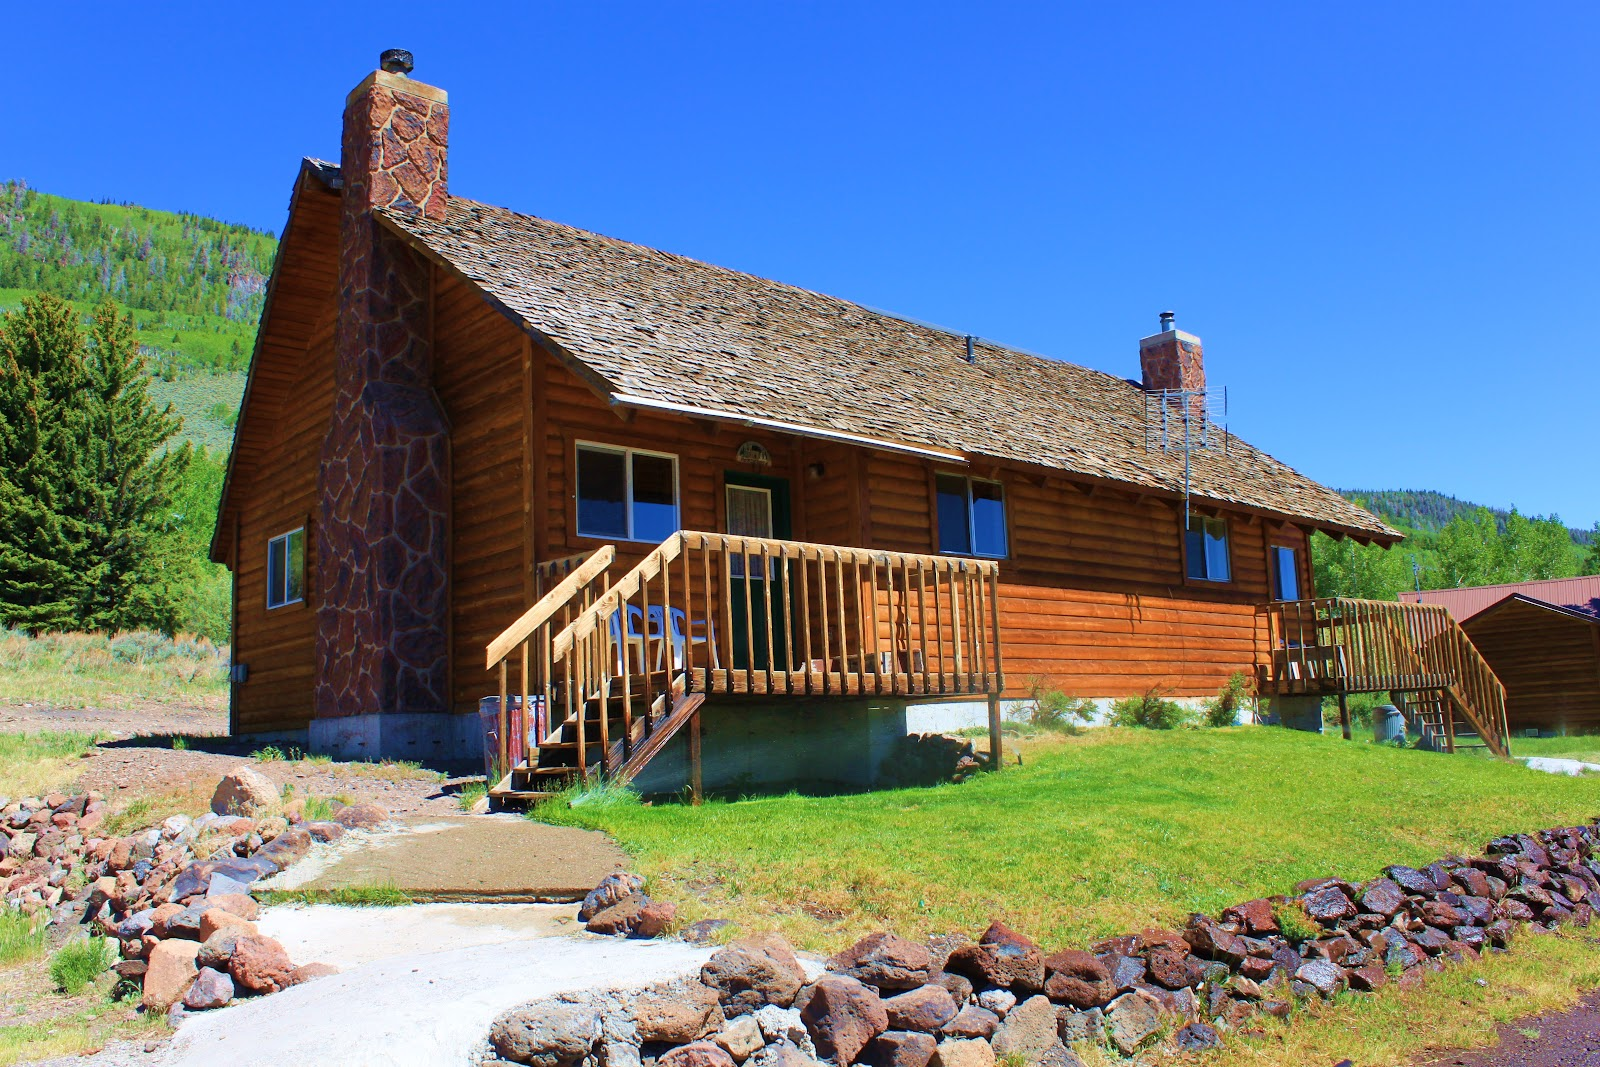 blog cabins liberty valley retreat eden nordic rustic way cabin utah n